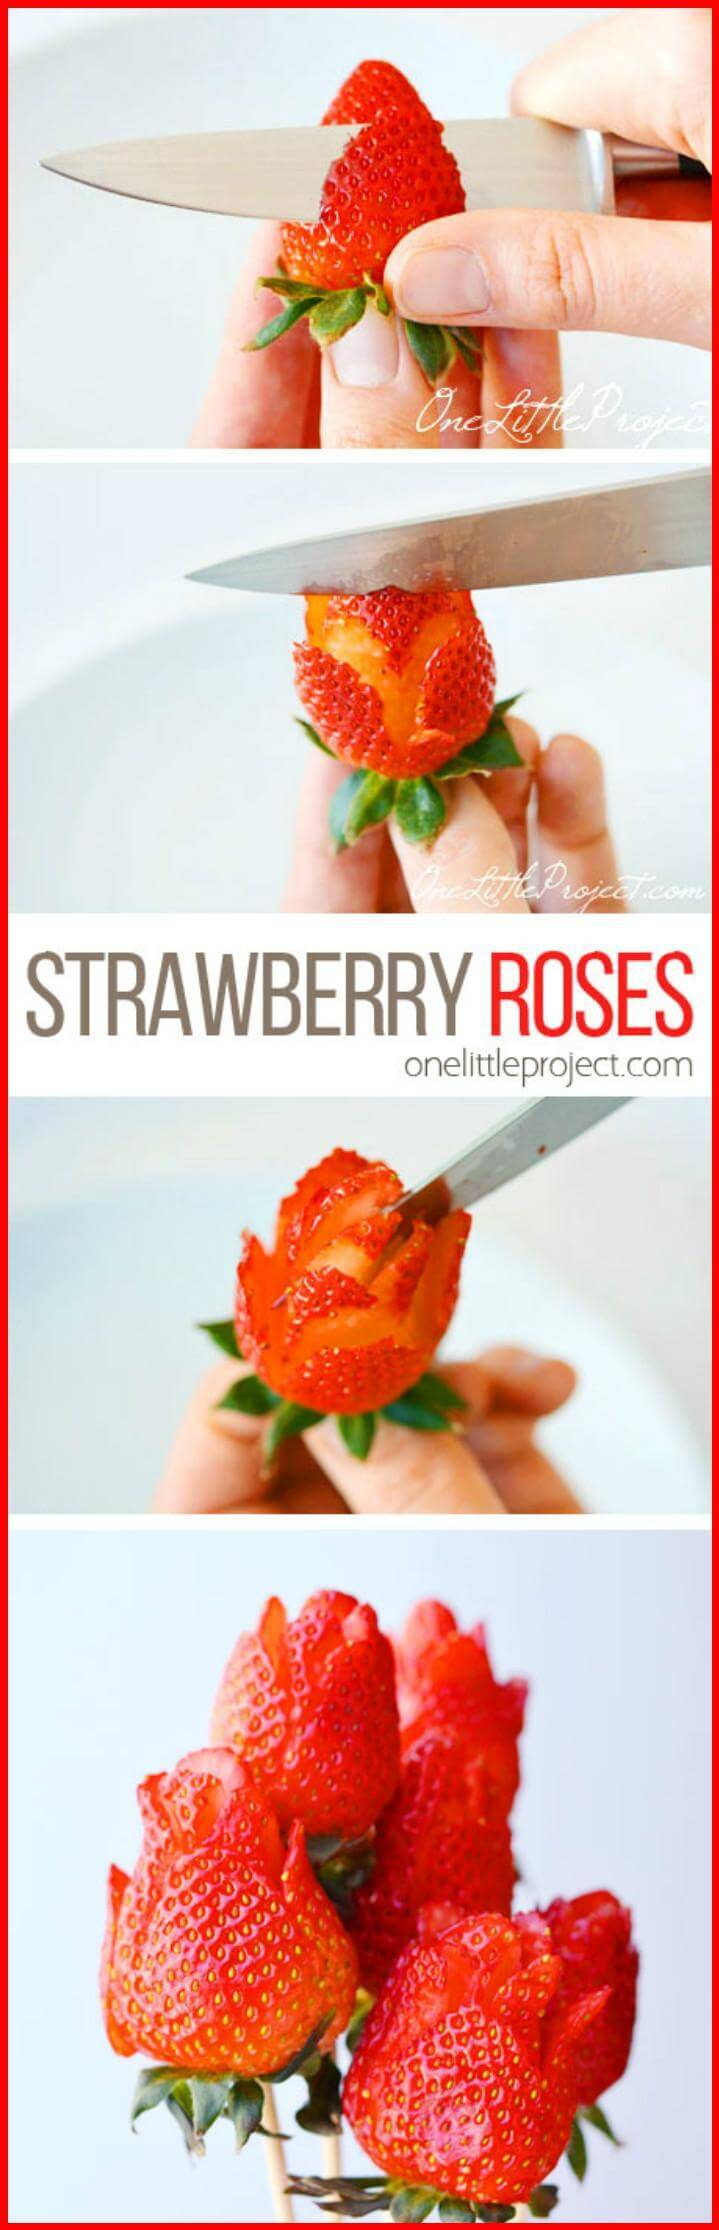 DIY self-made Strawberry roses for Mother's Day